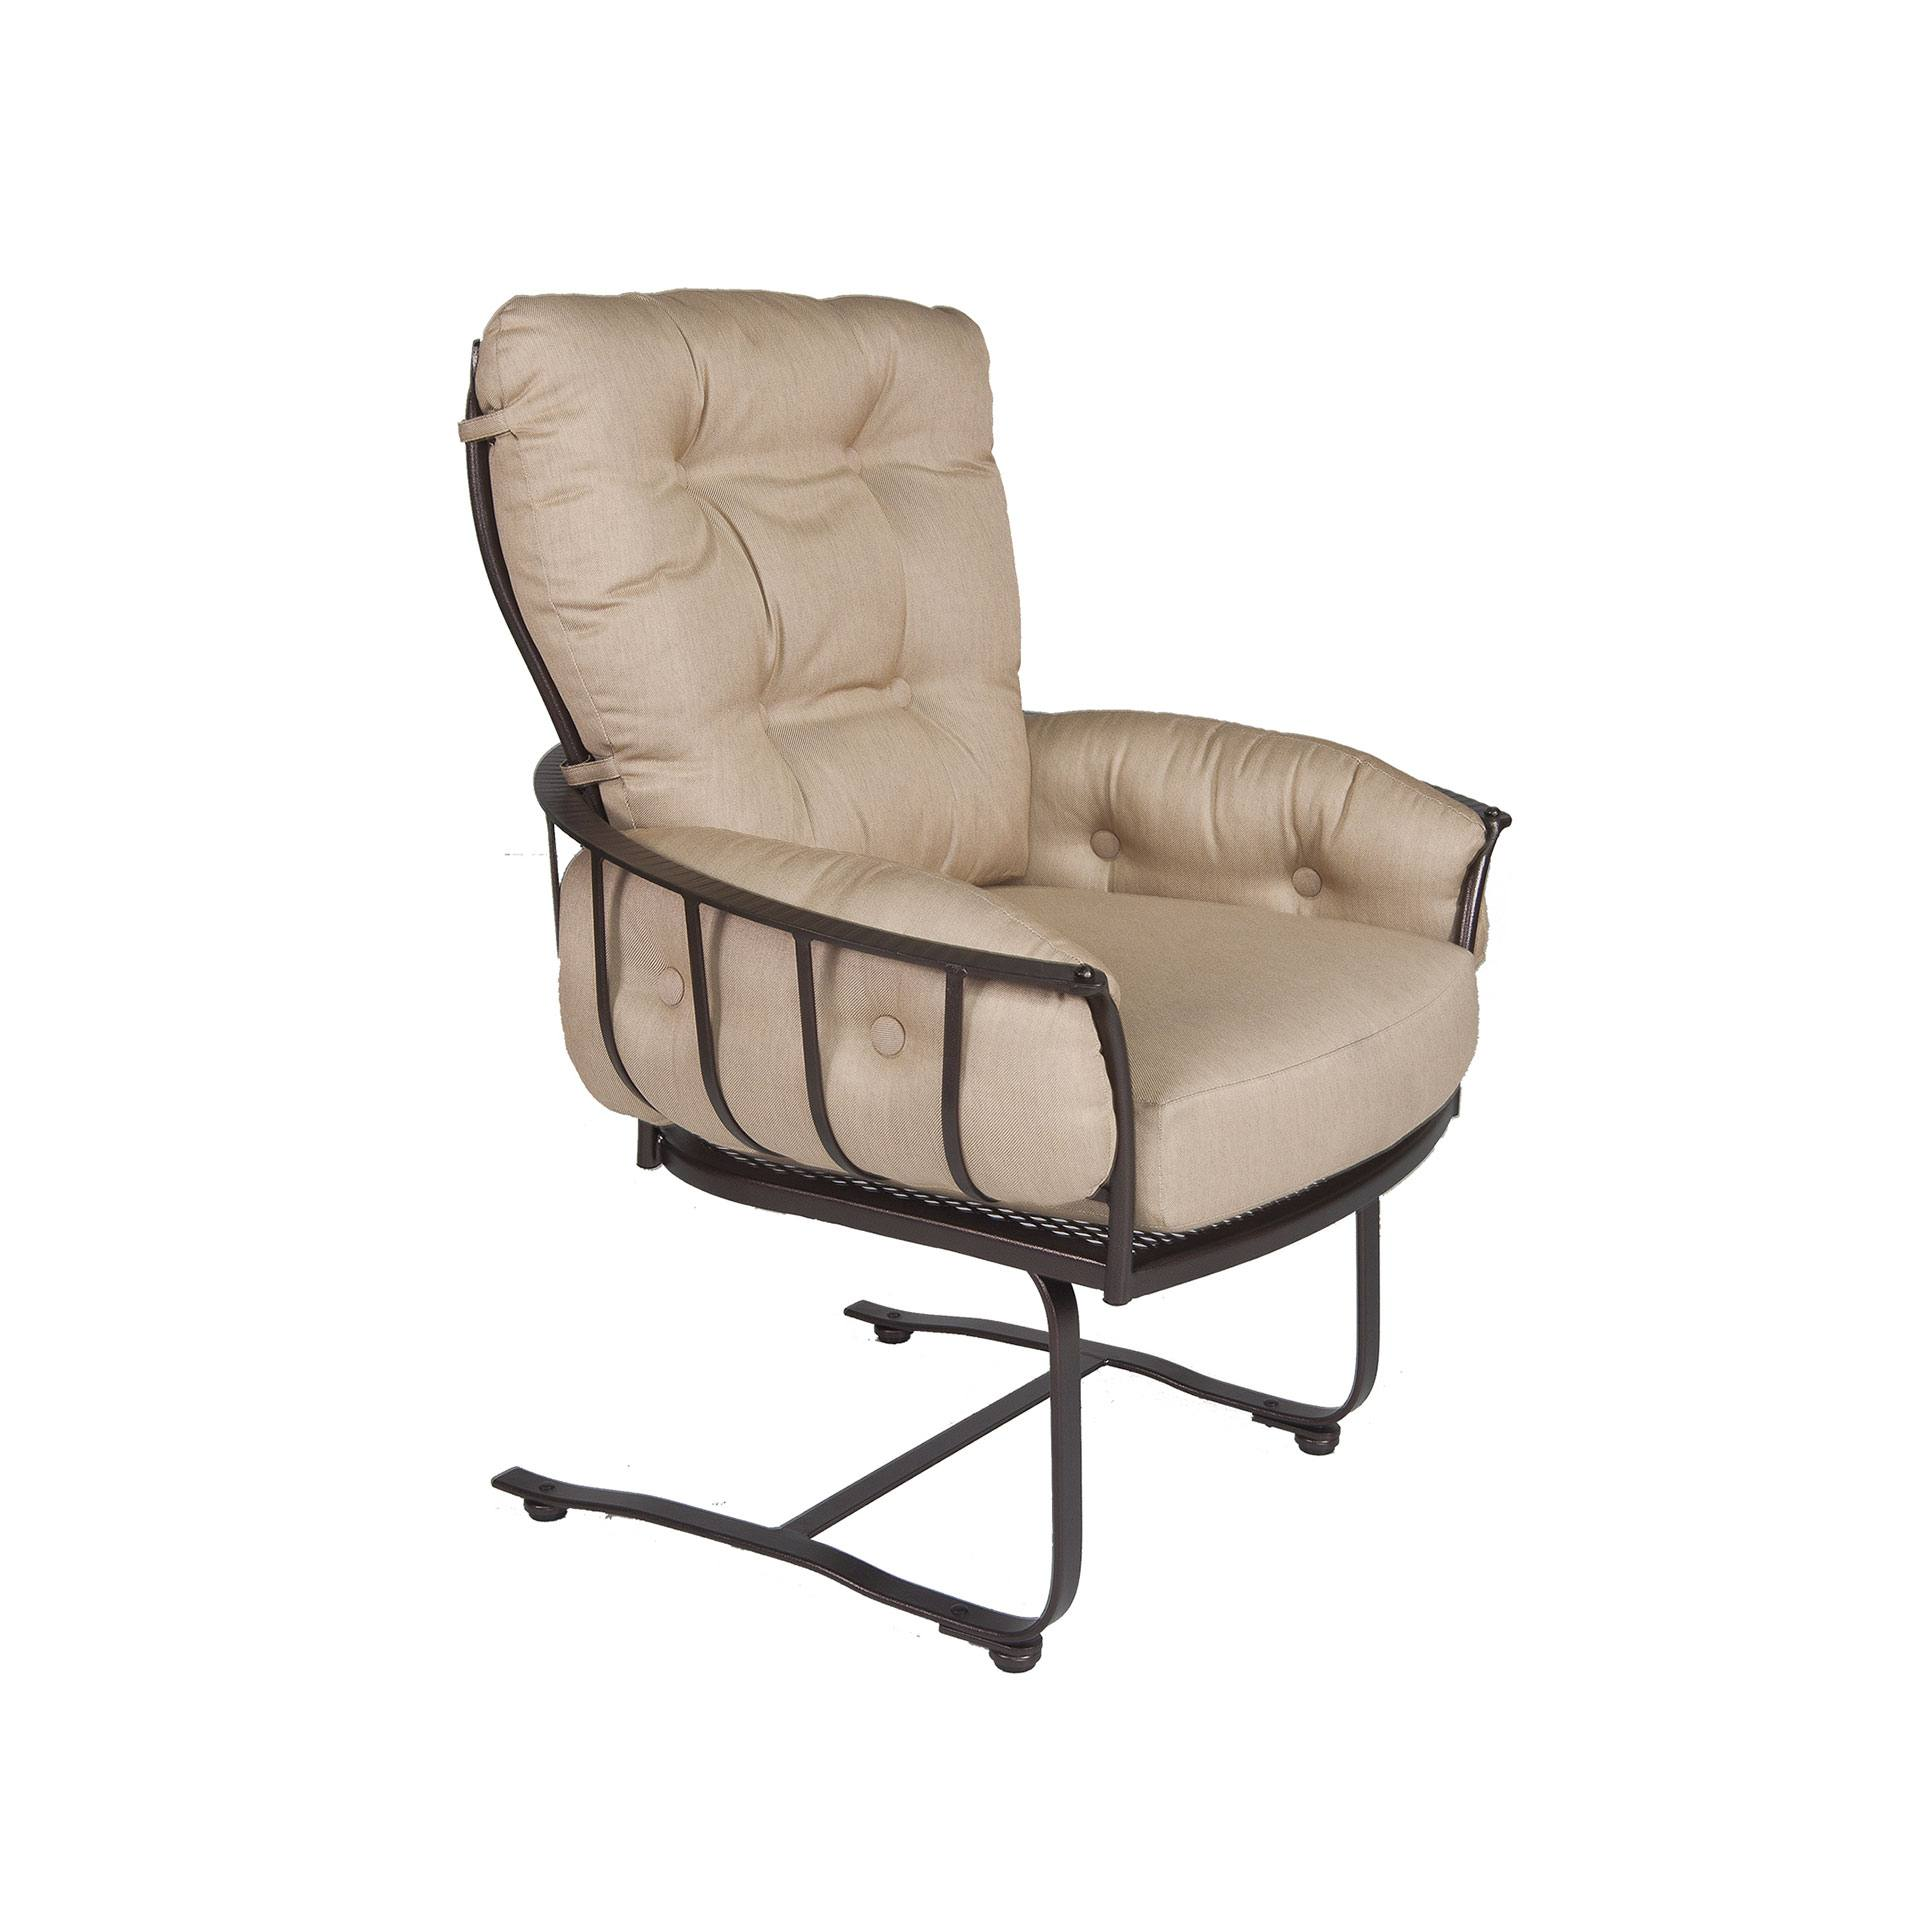 Ow Lee Monterra Mini Spring Base Lounge Chair Leisure Living